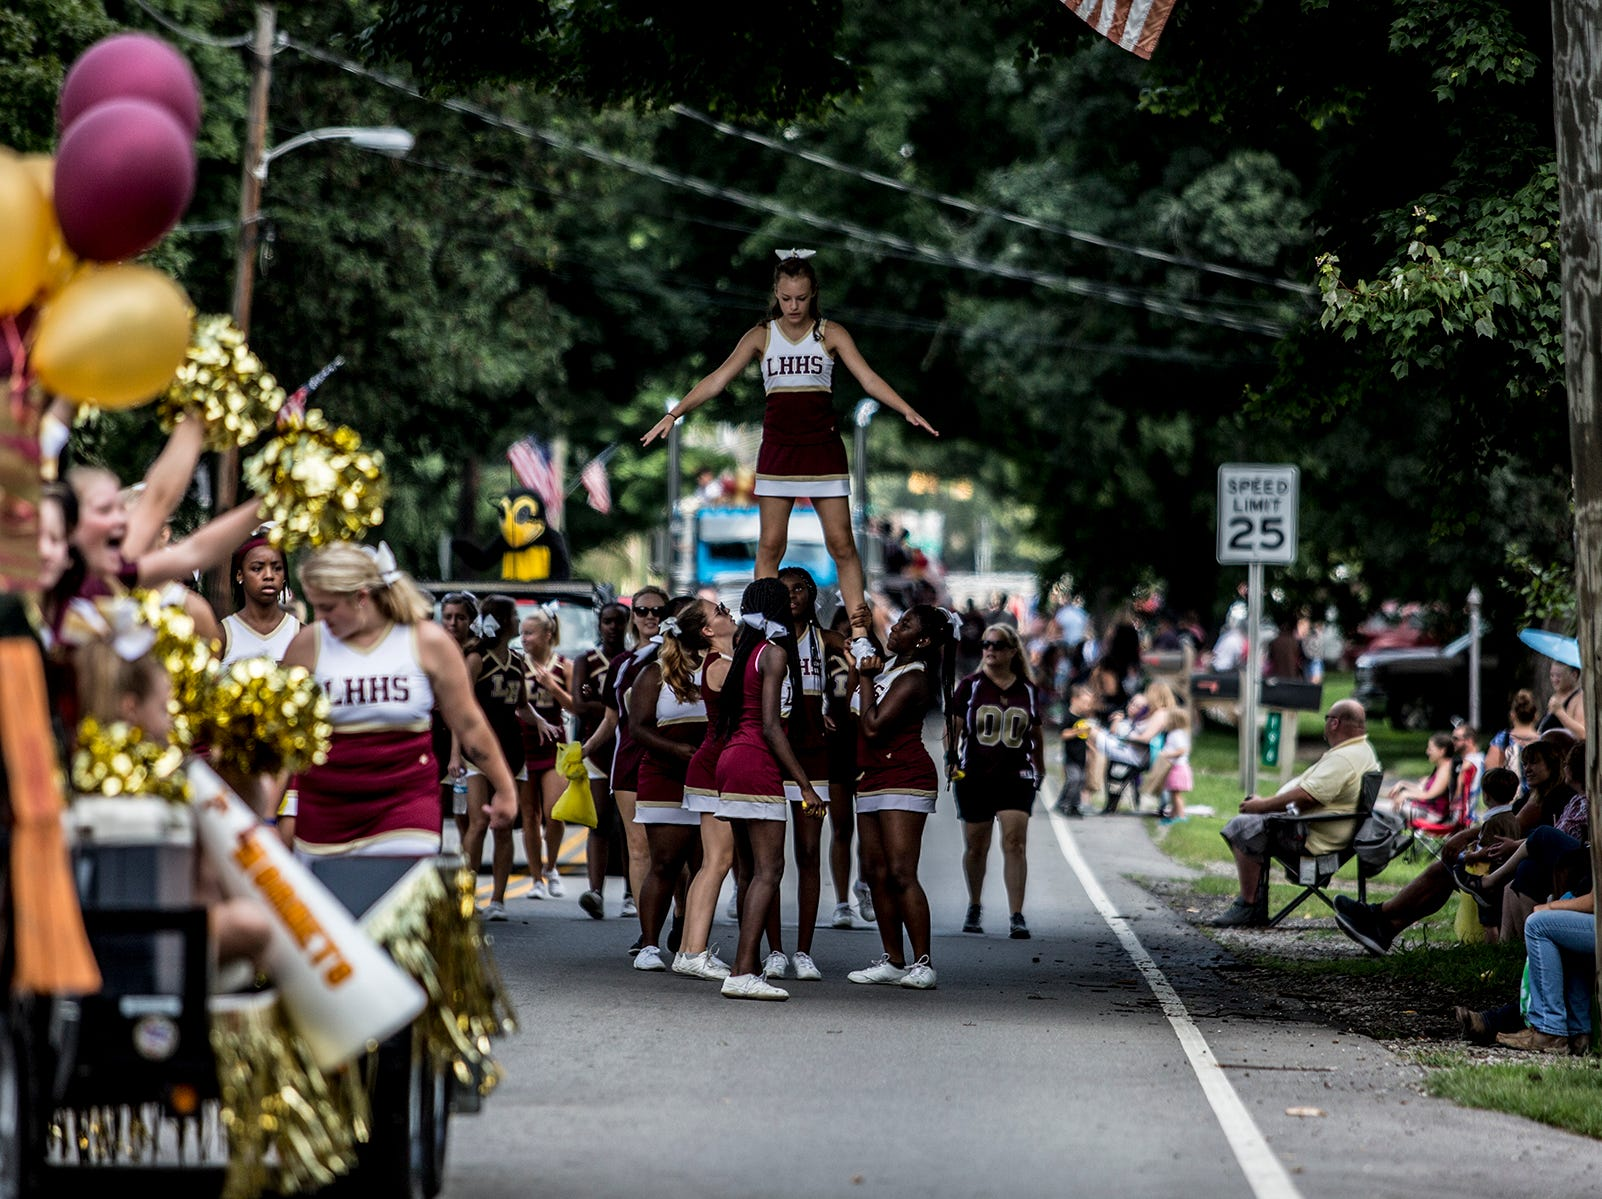 Licking Heights cheerleaders make their way down the parade route as hundred of people cheer them on.